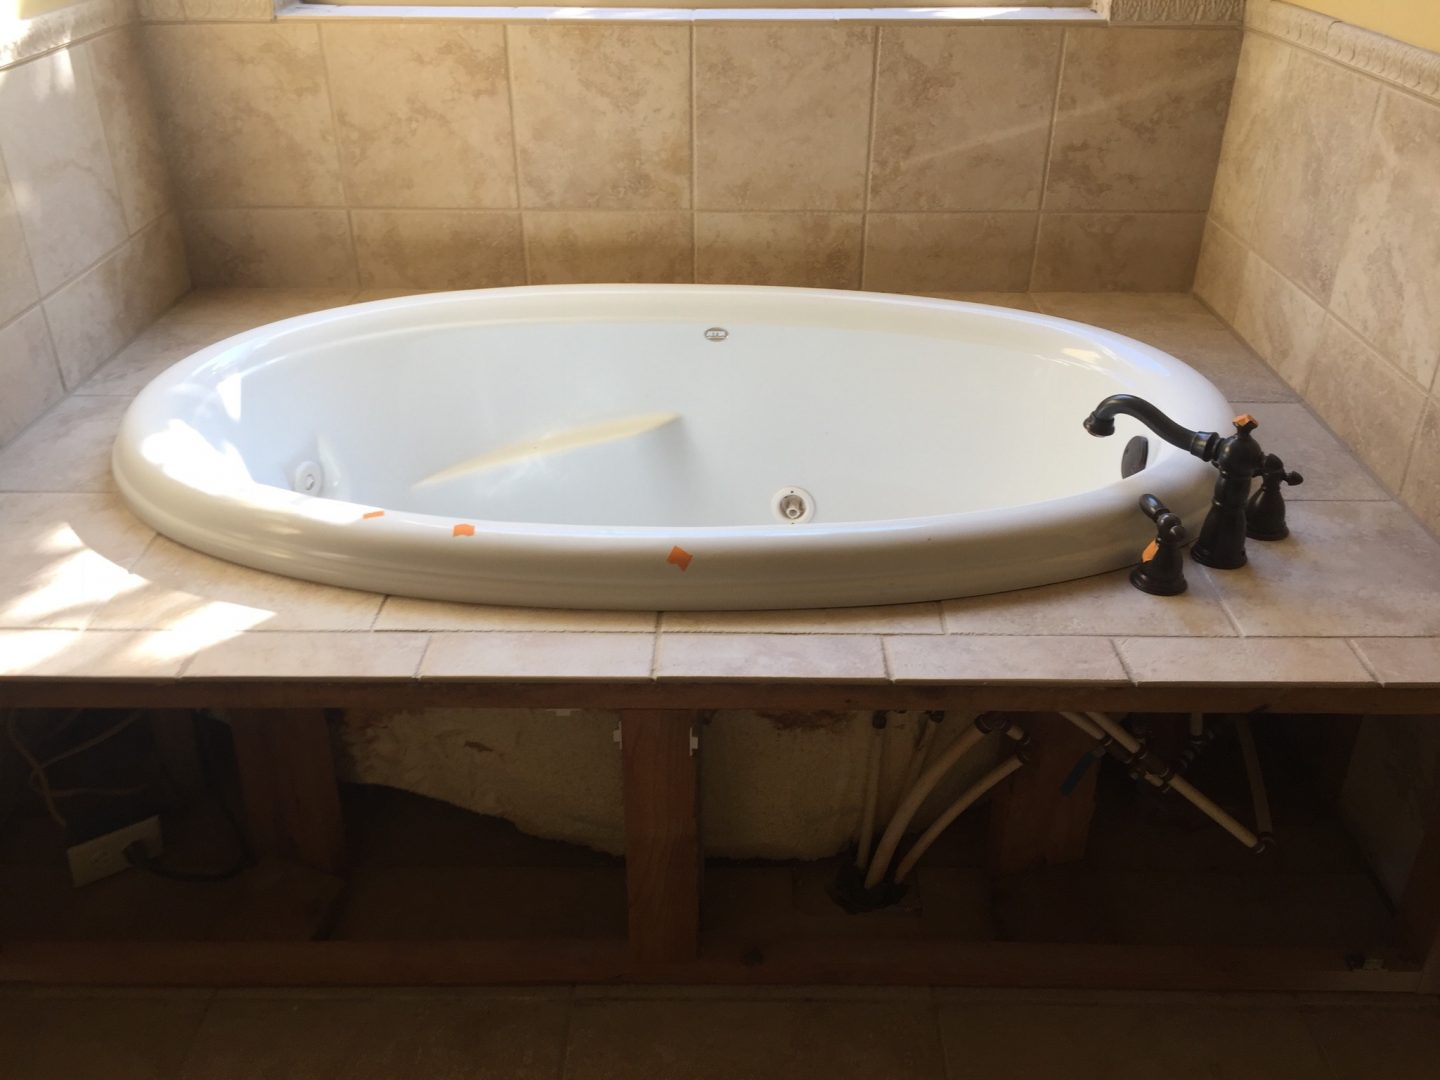 Soaking it up! My master bathtub remodel – Secrets of a Shopaholic